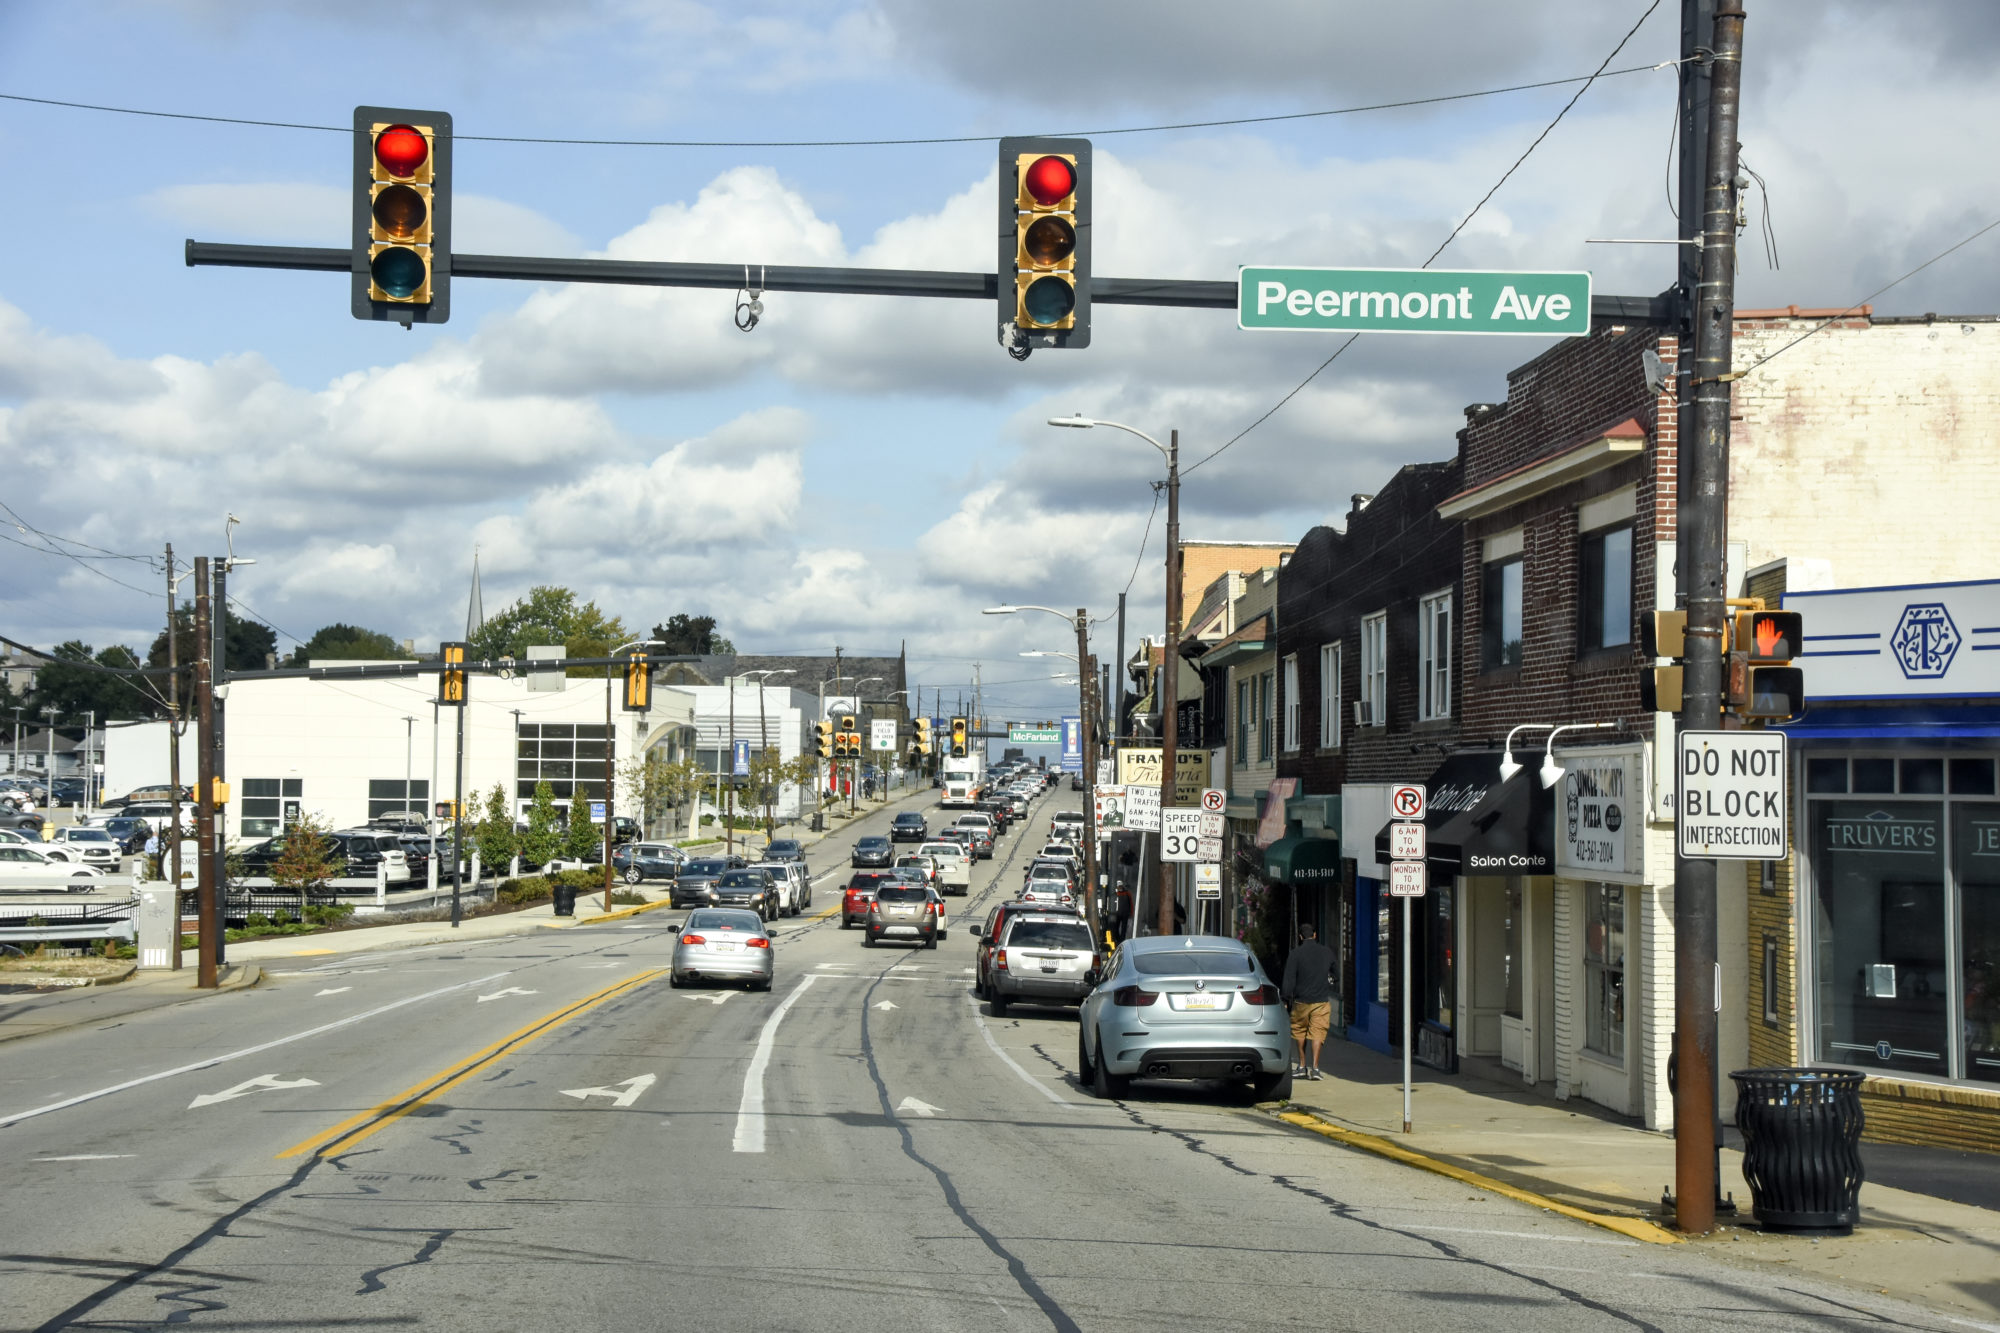 Street view of the town of Dormont at Peermont Ave